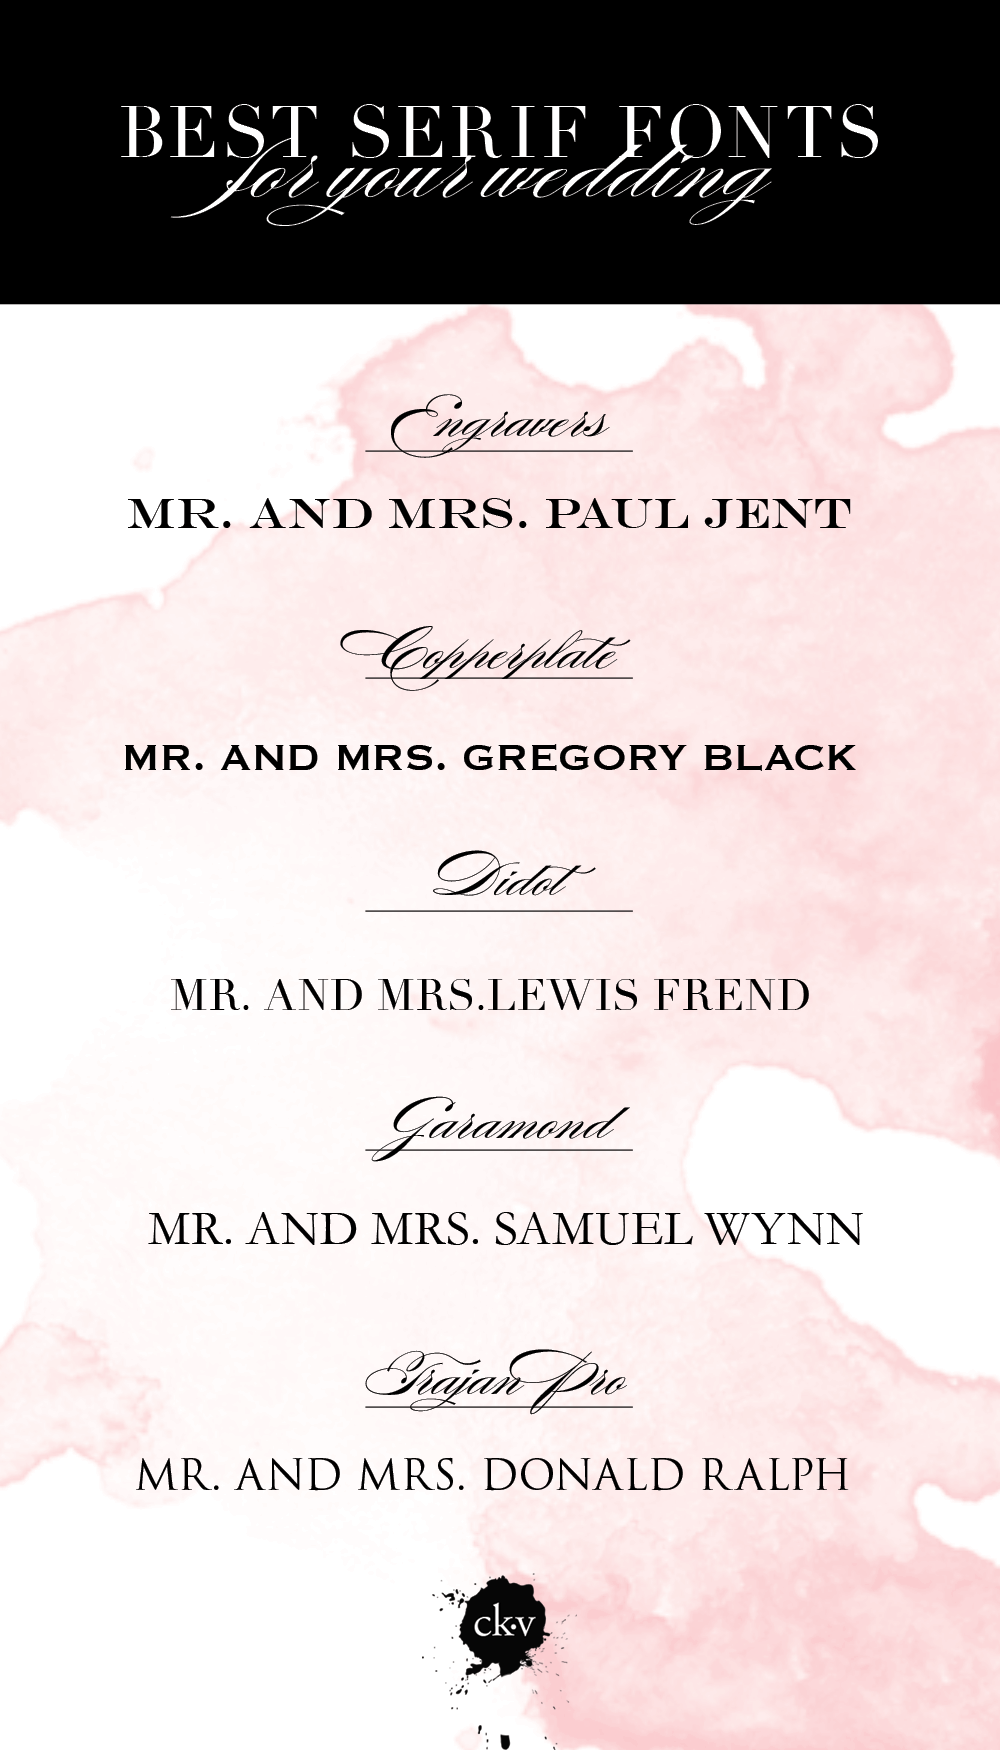 FONT FRIDAY: THE ABSOLUTE BEST SERIF FONTS FOR YOUR WEDDING ...